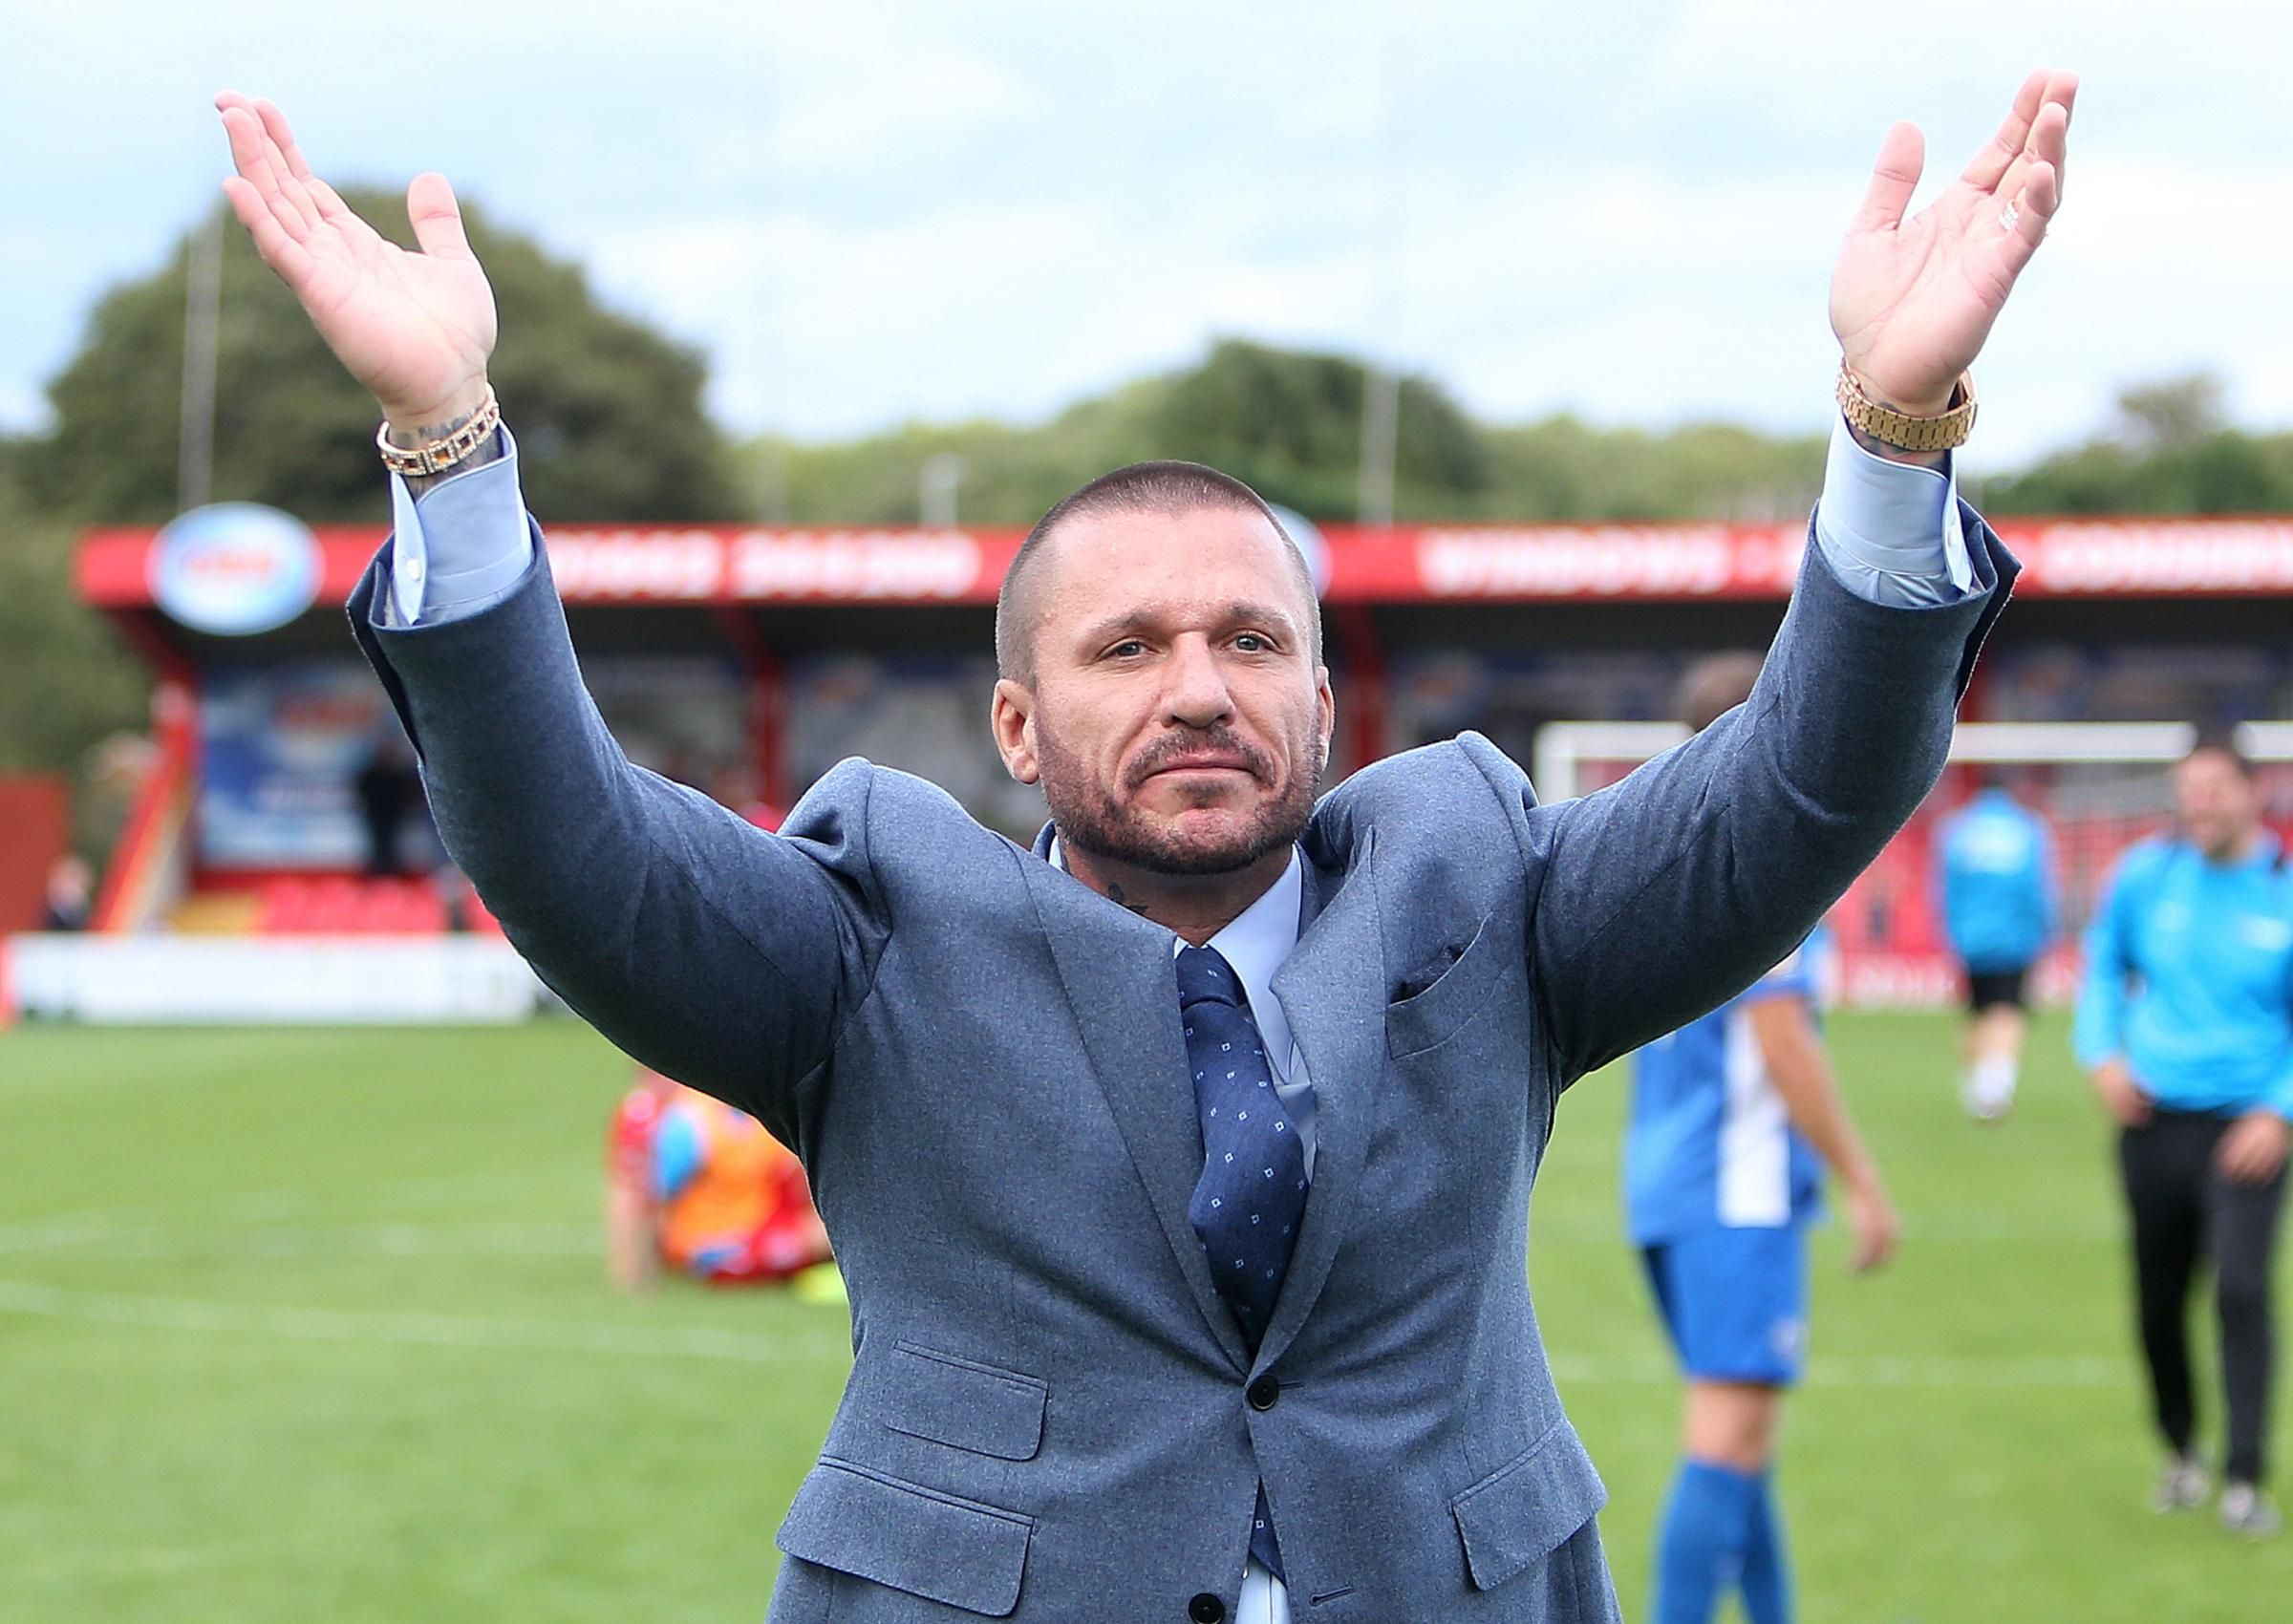 Remaining in the dugout for now - Billericay Town owner Glenn Tamplin Picture: NICKY HAYES